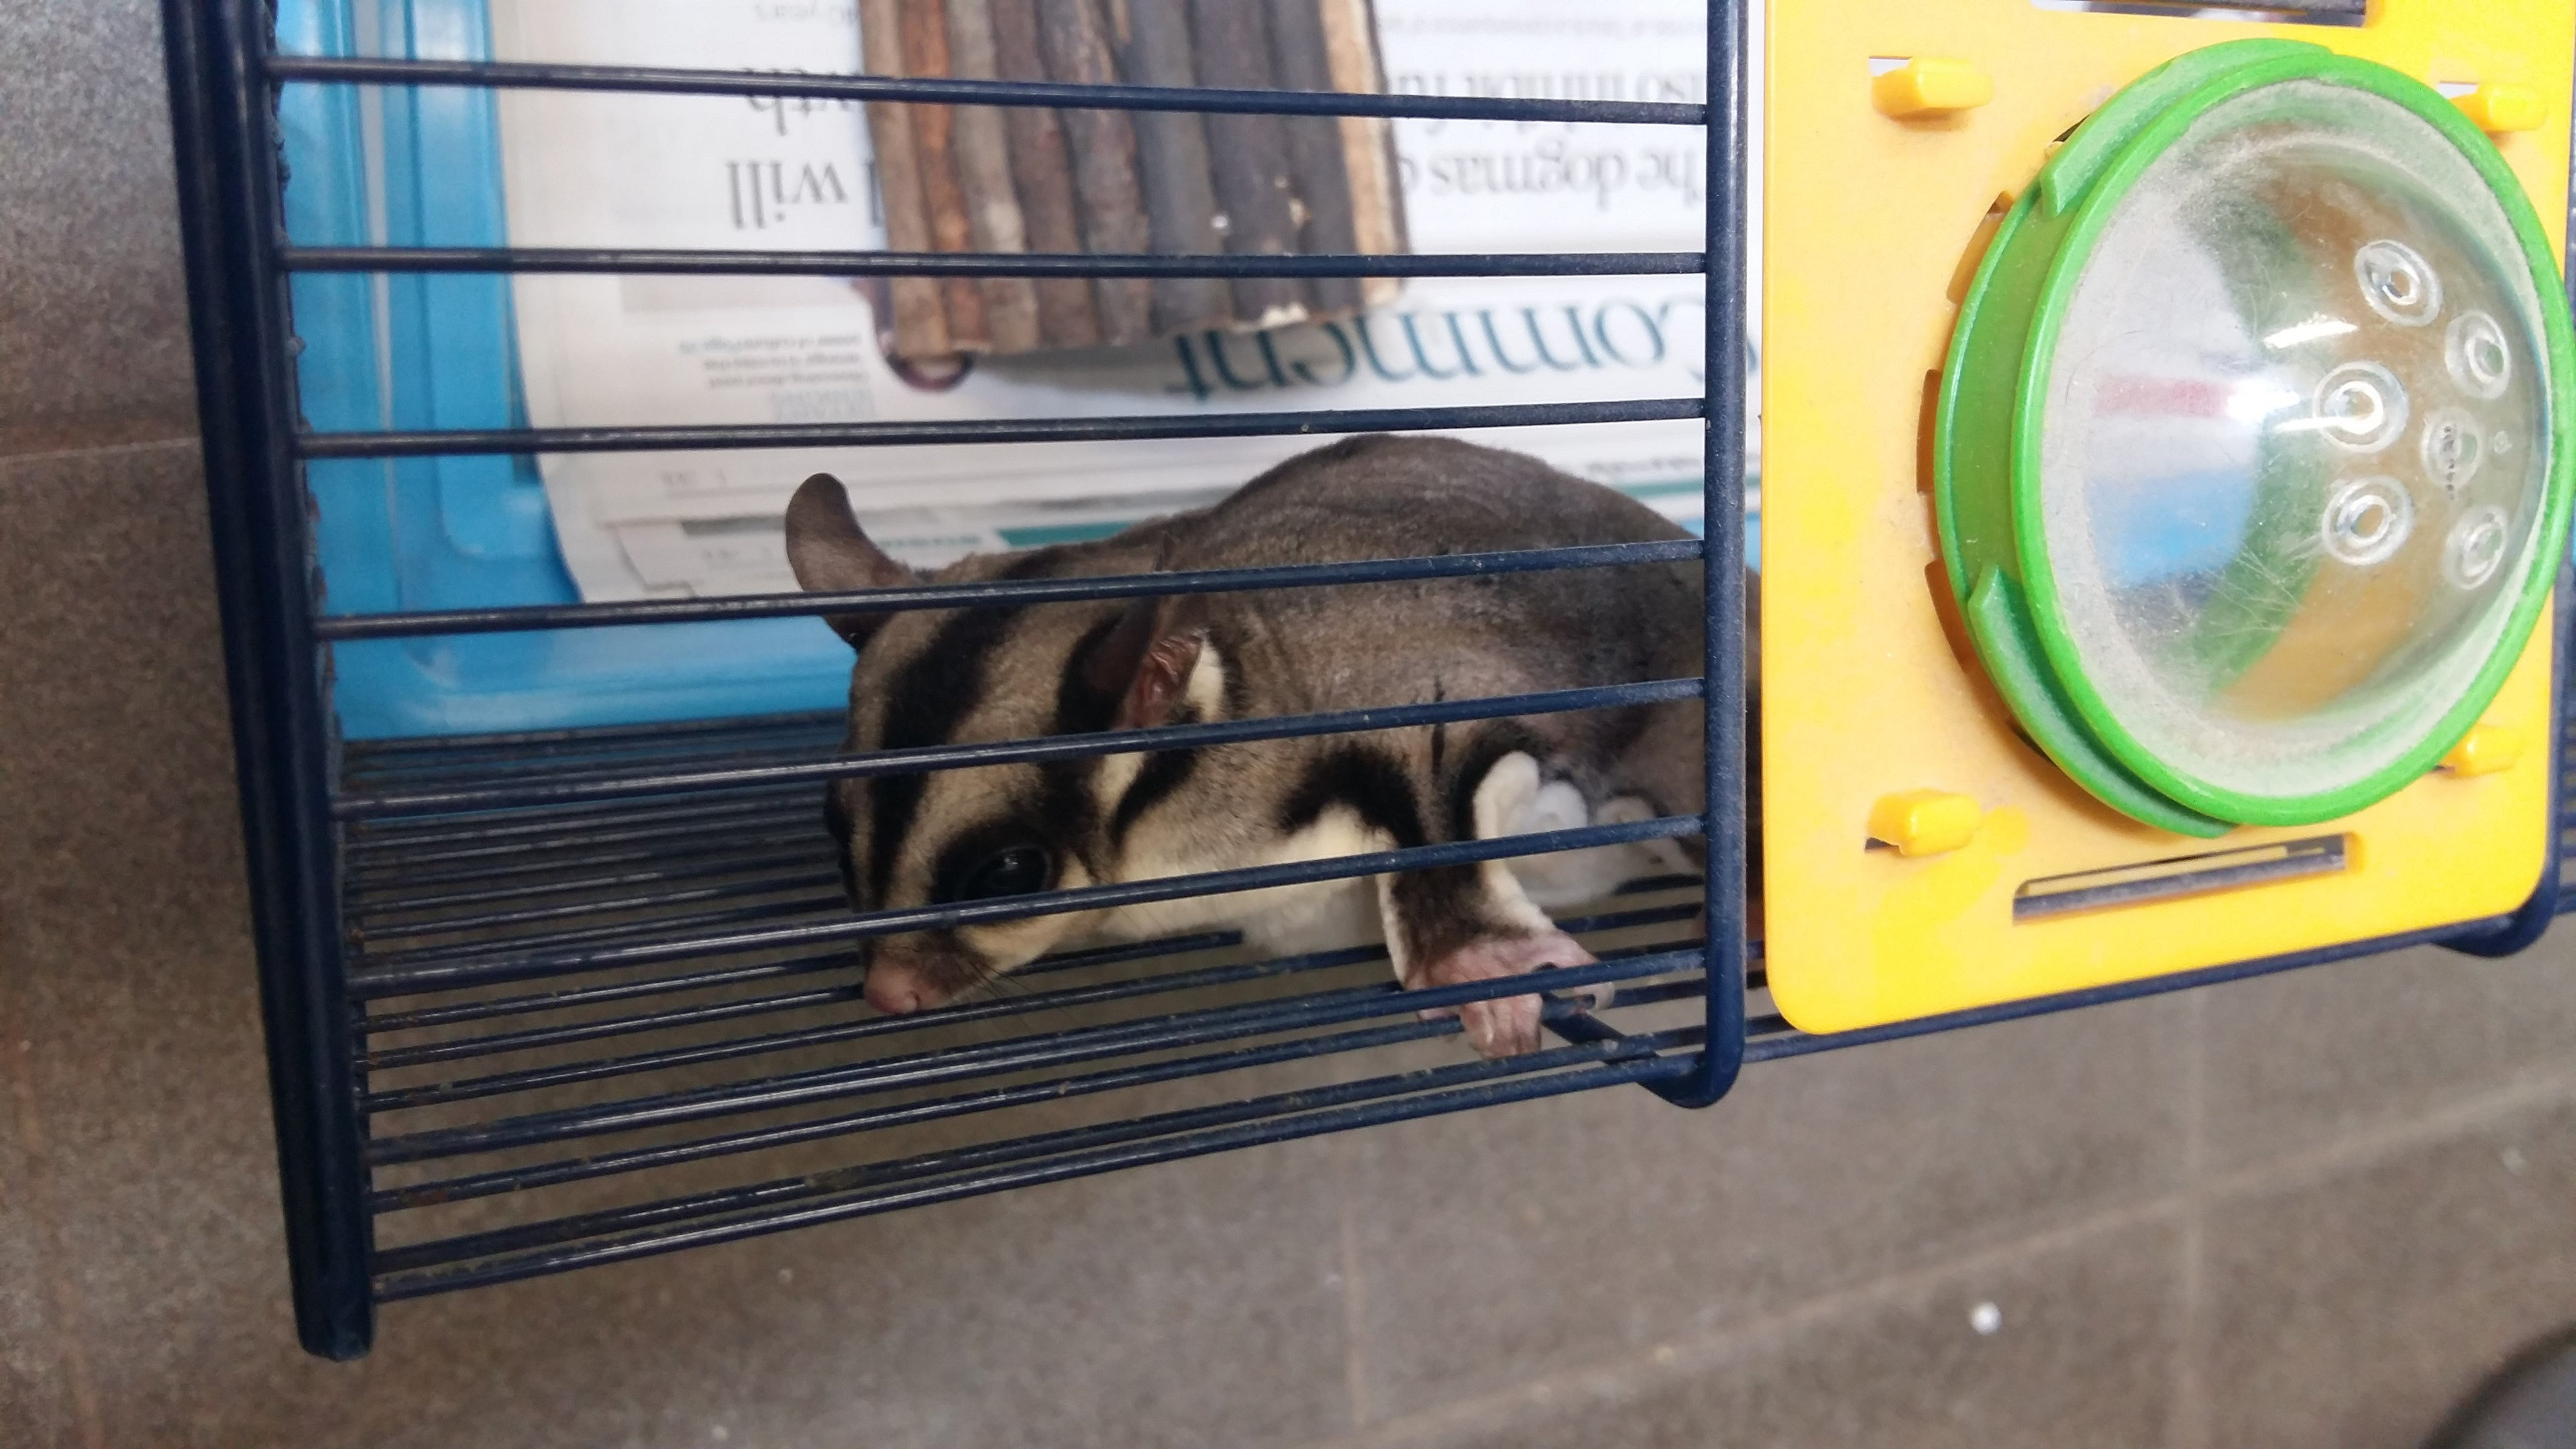 The sugar glider possum is currently at the Scottish SPCA centre in Balerno.